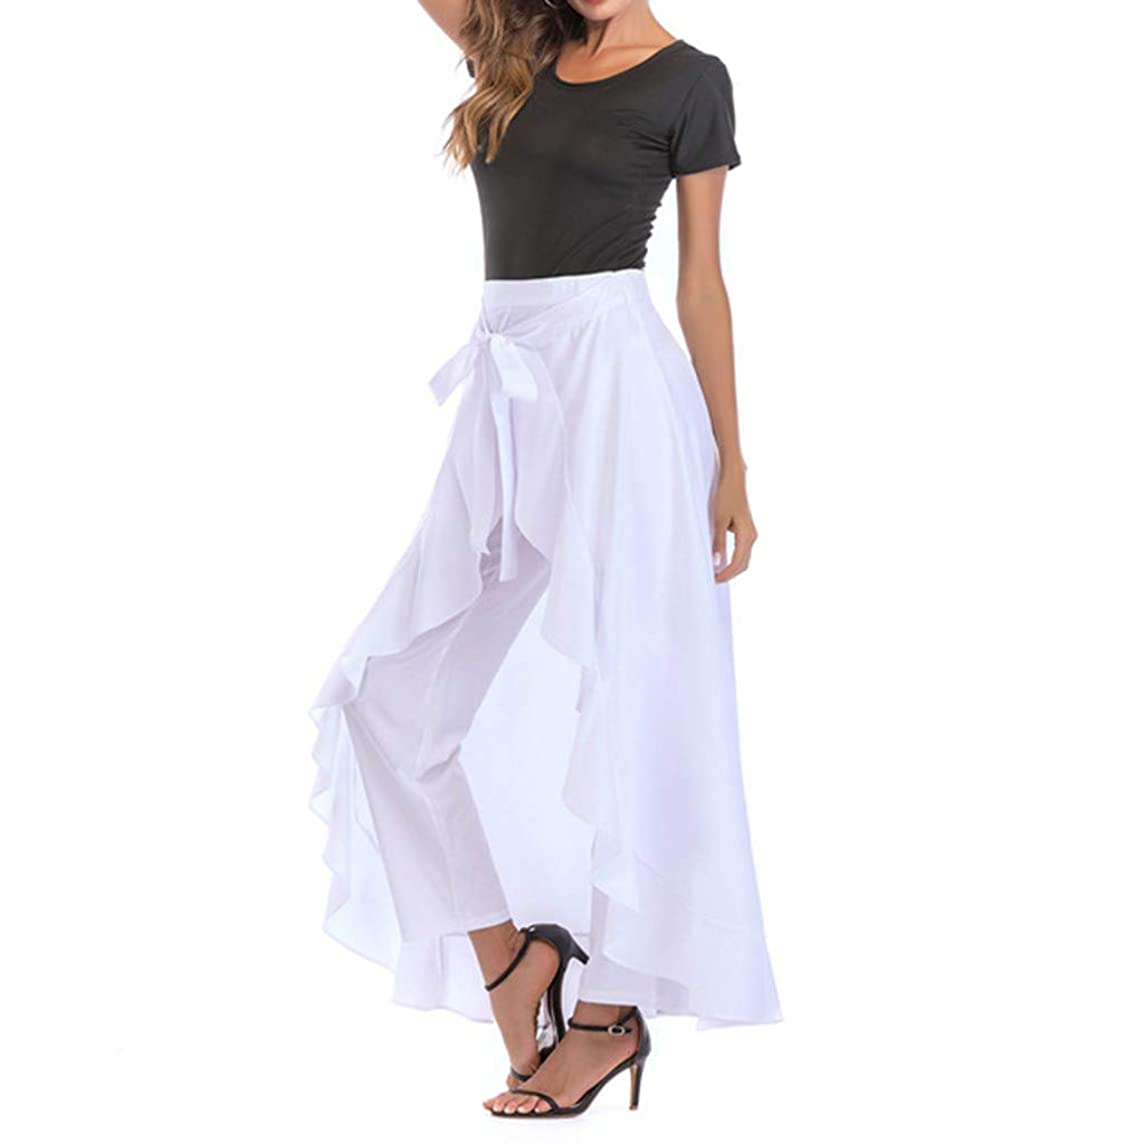 LUXISDE Skirts for Womens Grey Side Zipper Tie Front Overlay Pants Ruffle Skirt Bow Long Skirt